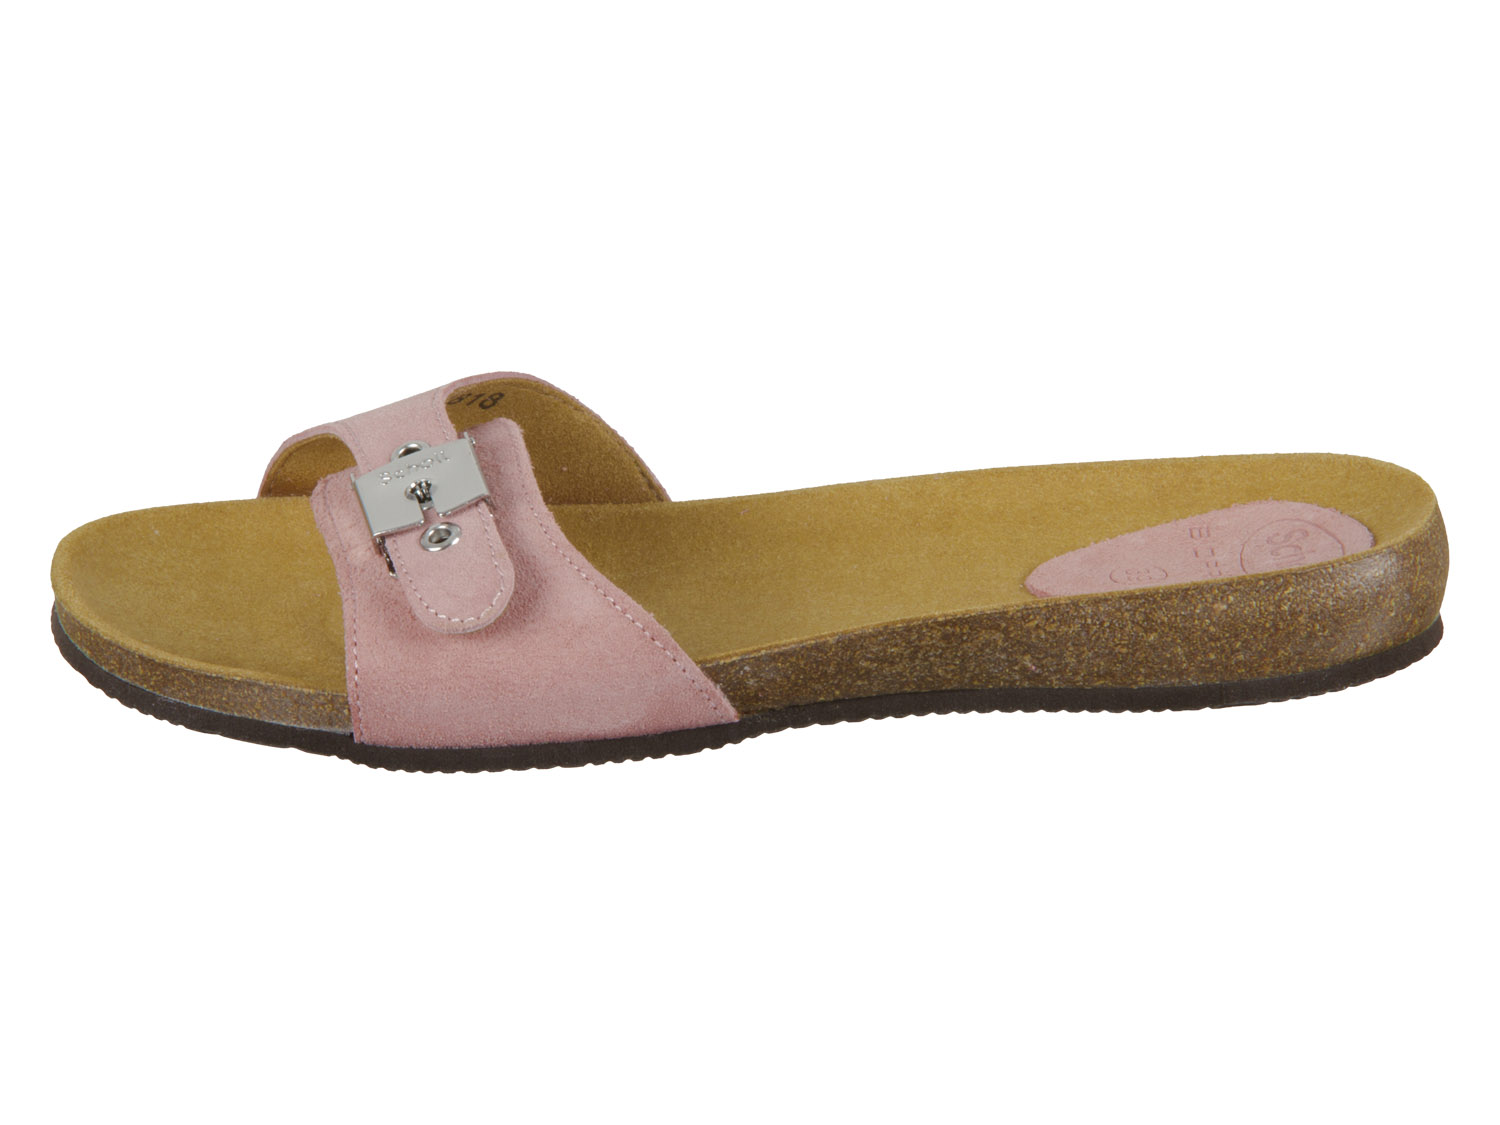 Scholl Bahama 2.0 708351 50 131 pale pink Suede